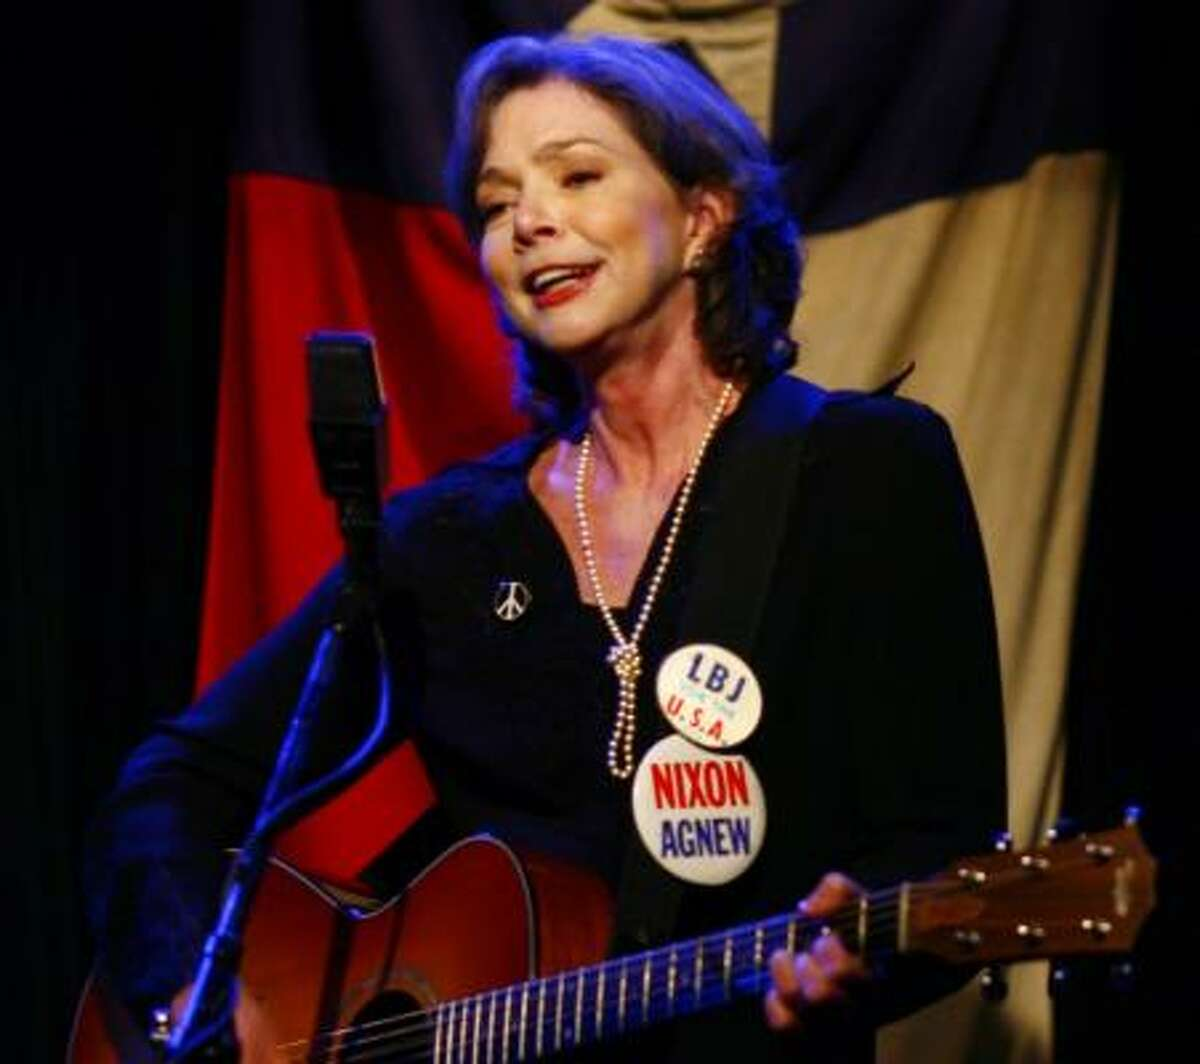 Last June, Nanci Griffith, who'll appear in For the Sake of the Song: The Story of Anderson Fair, returned to Anderson Fair for two nights of fundraising concerts.